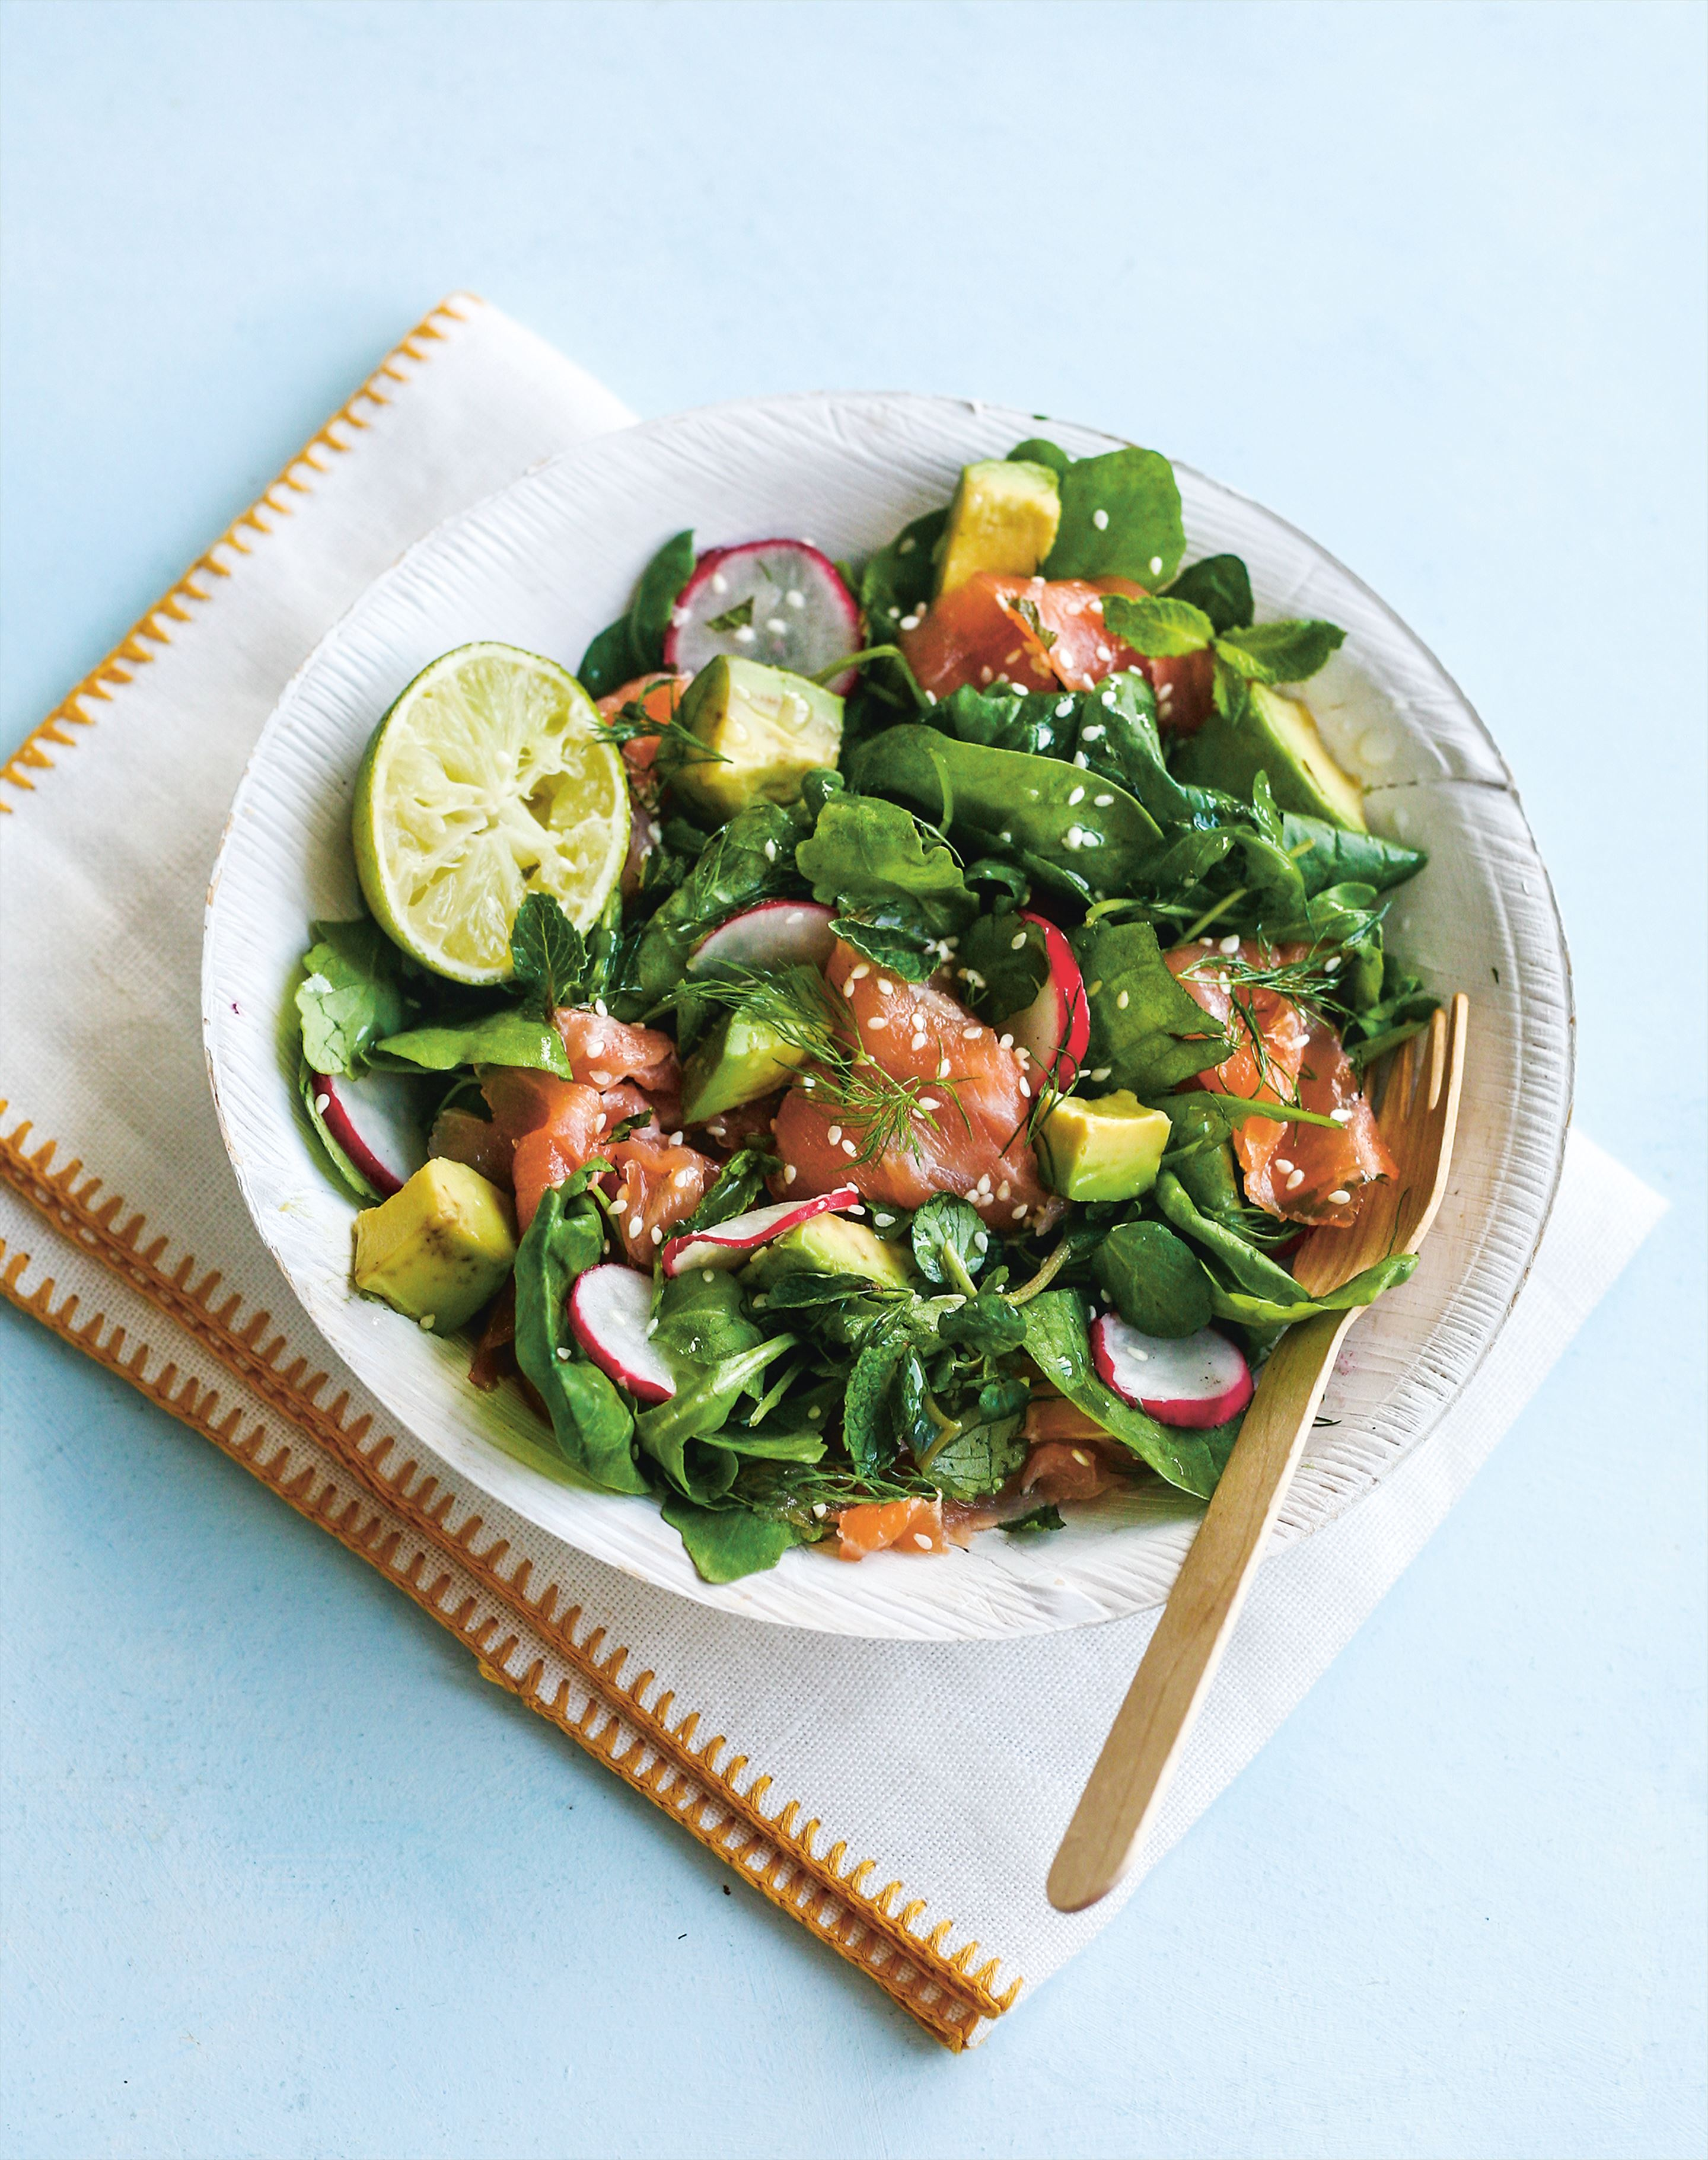 Smoked salmon with avocado & green leaf salad